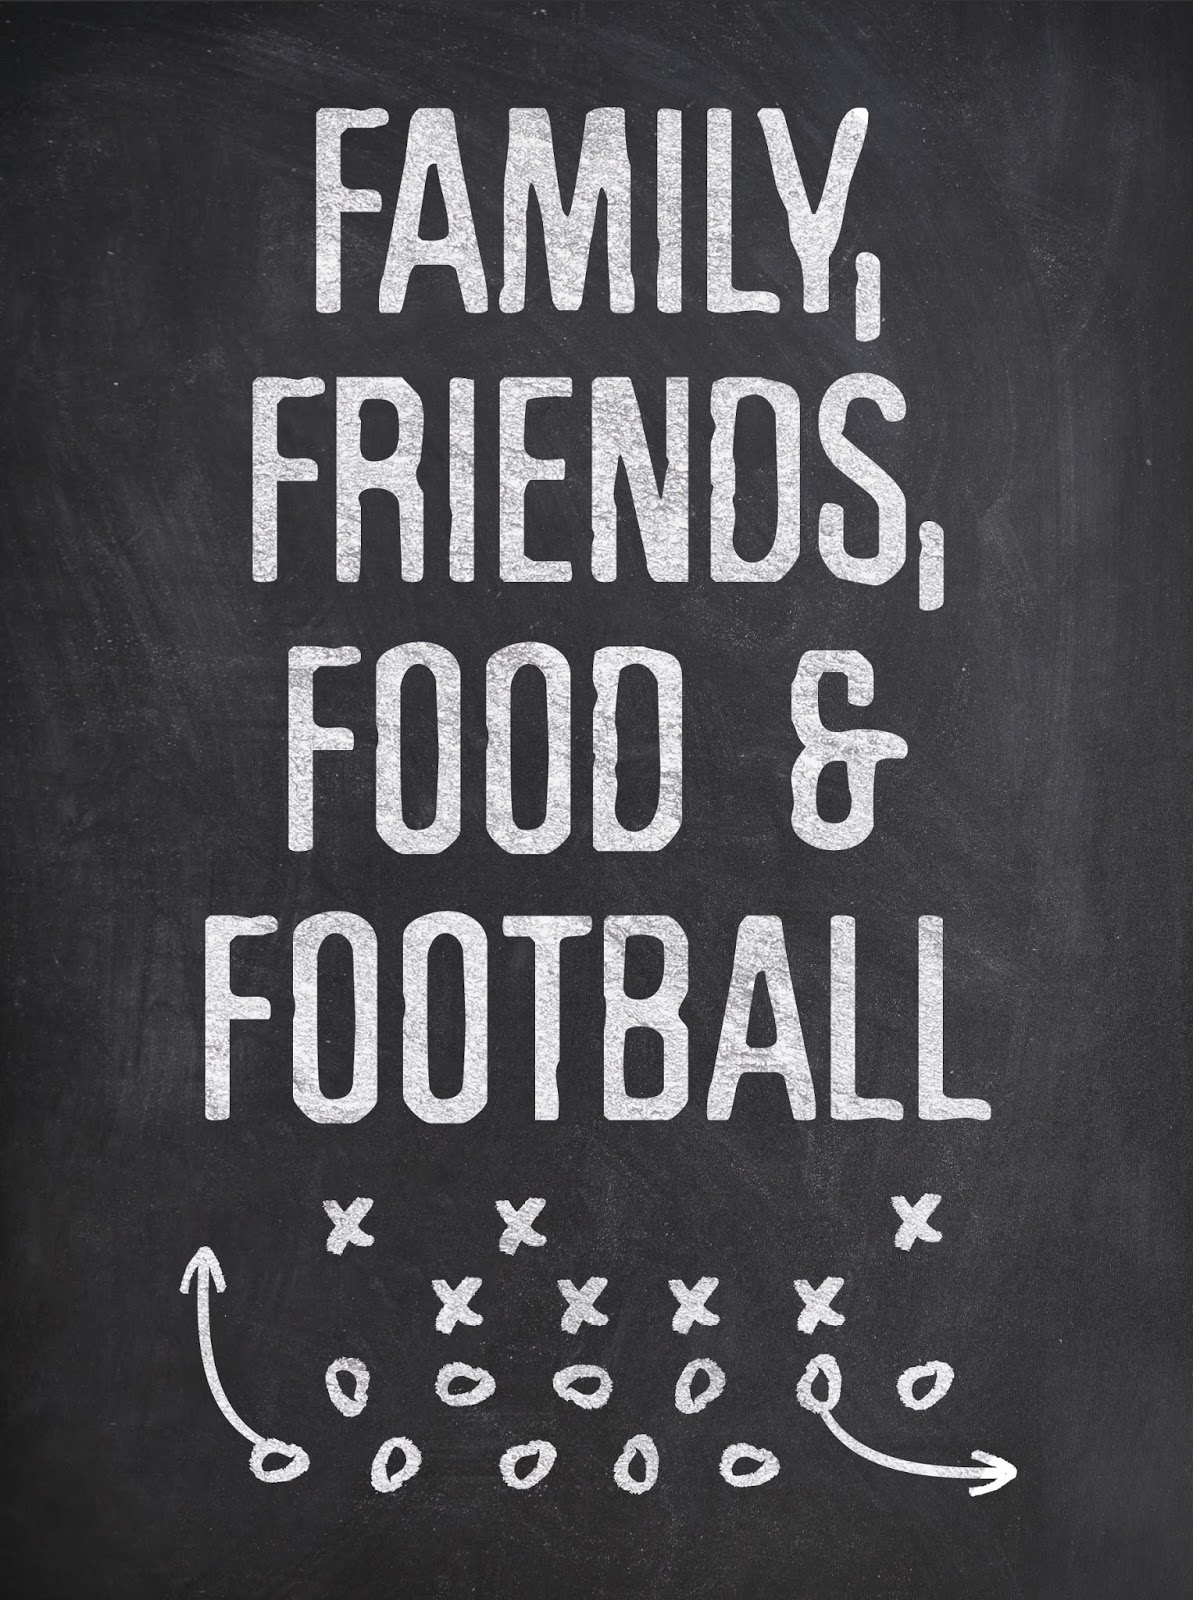 Soccer Family Quotes. QuotesGram